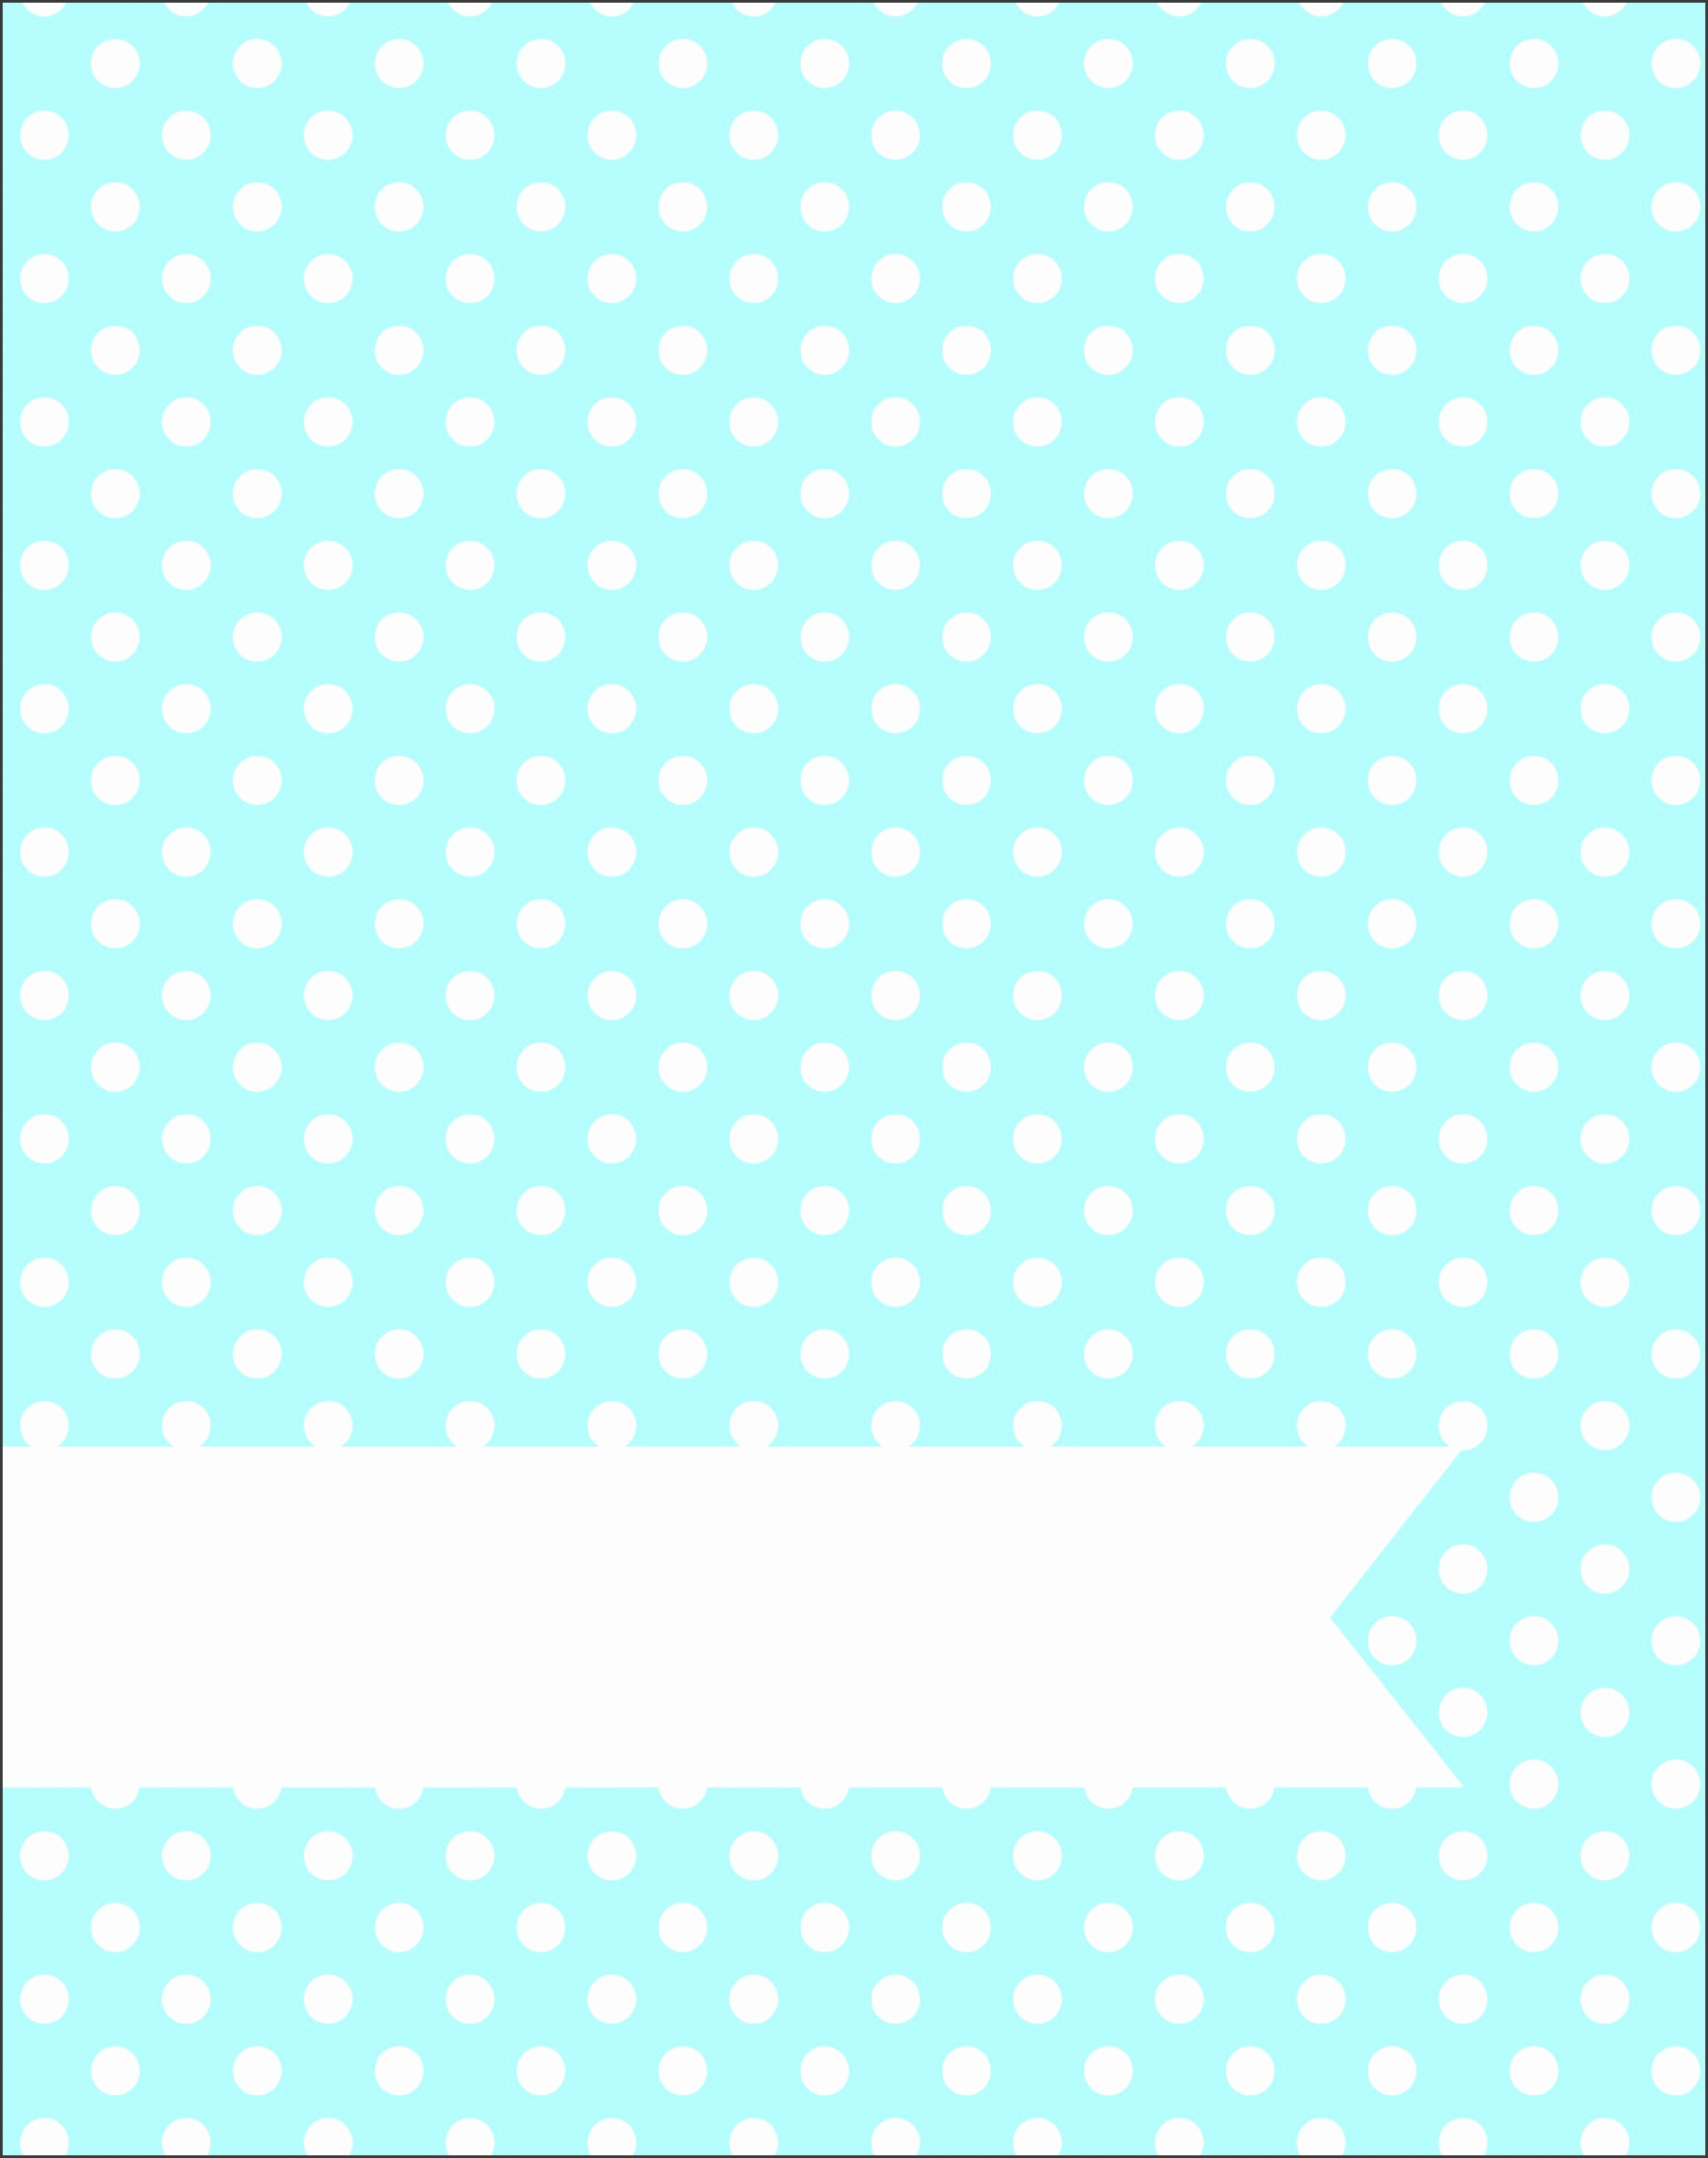 BLANK divider page